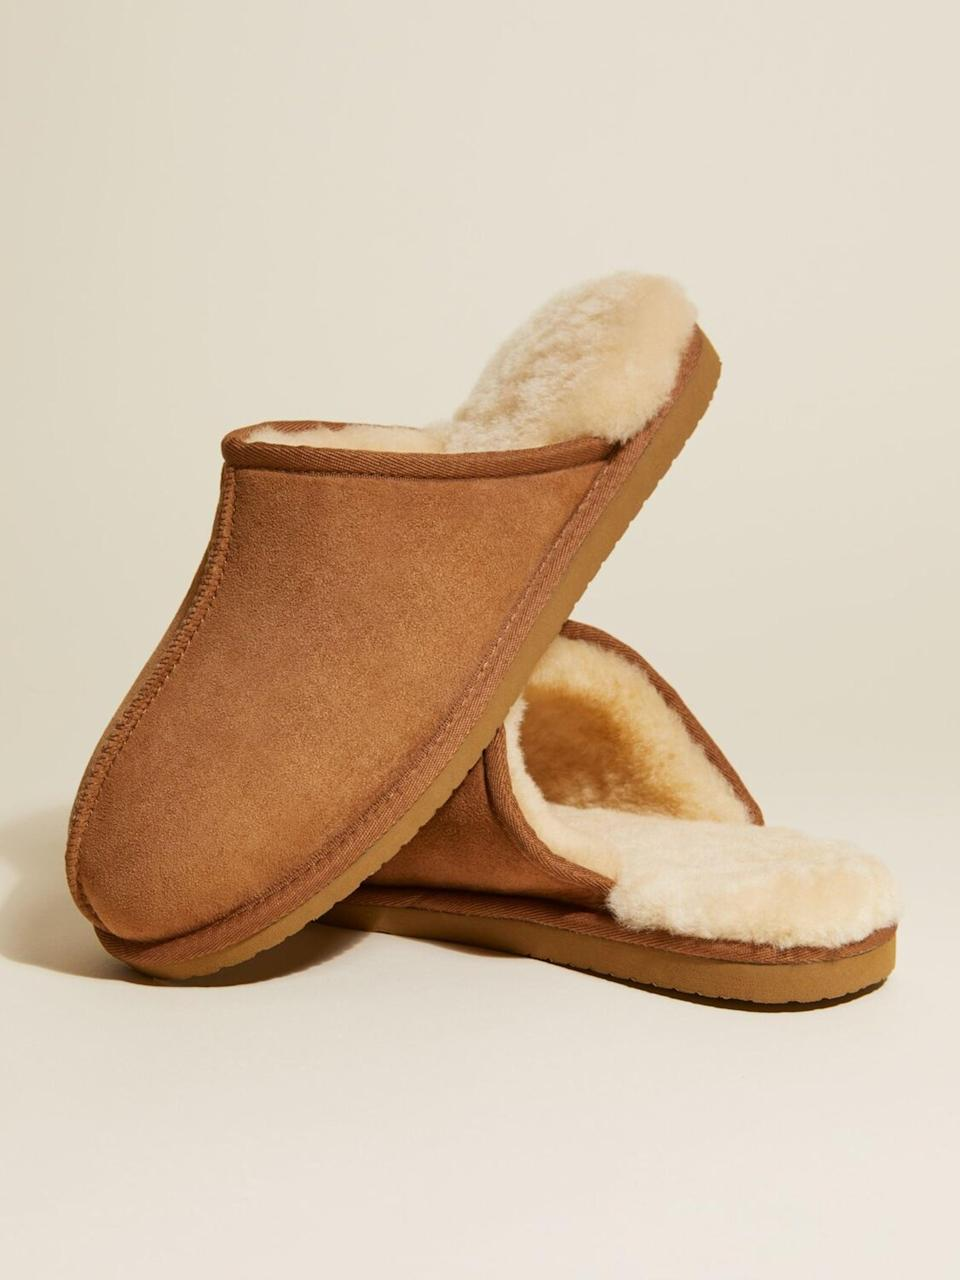 """<p>""""Let's be real: shoes are optional right now. Because I'm not venturing outside anytime soon, I sprung for these insanely cozy, Ugg-inspired <span>Italic Slippers</span> ($45), specially designed with a shearling lining and an EVA sole to keep feet warm in the winter and cool in the summer. Did I mention they feel like I'm walking on actual clouds?"""" - CS</p>"""